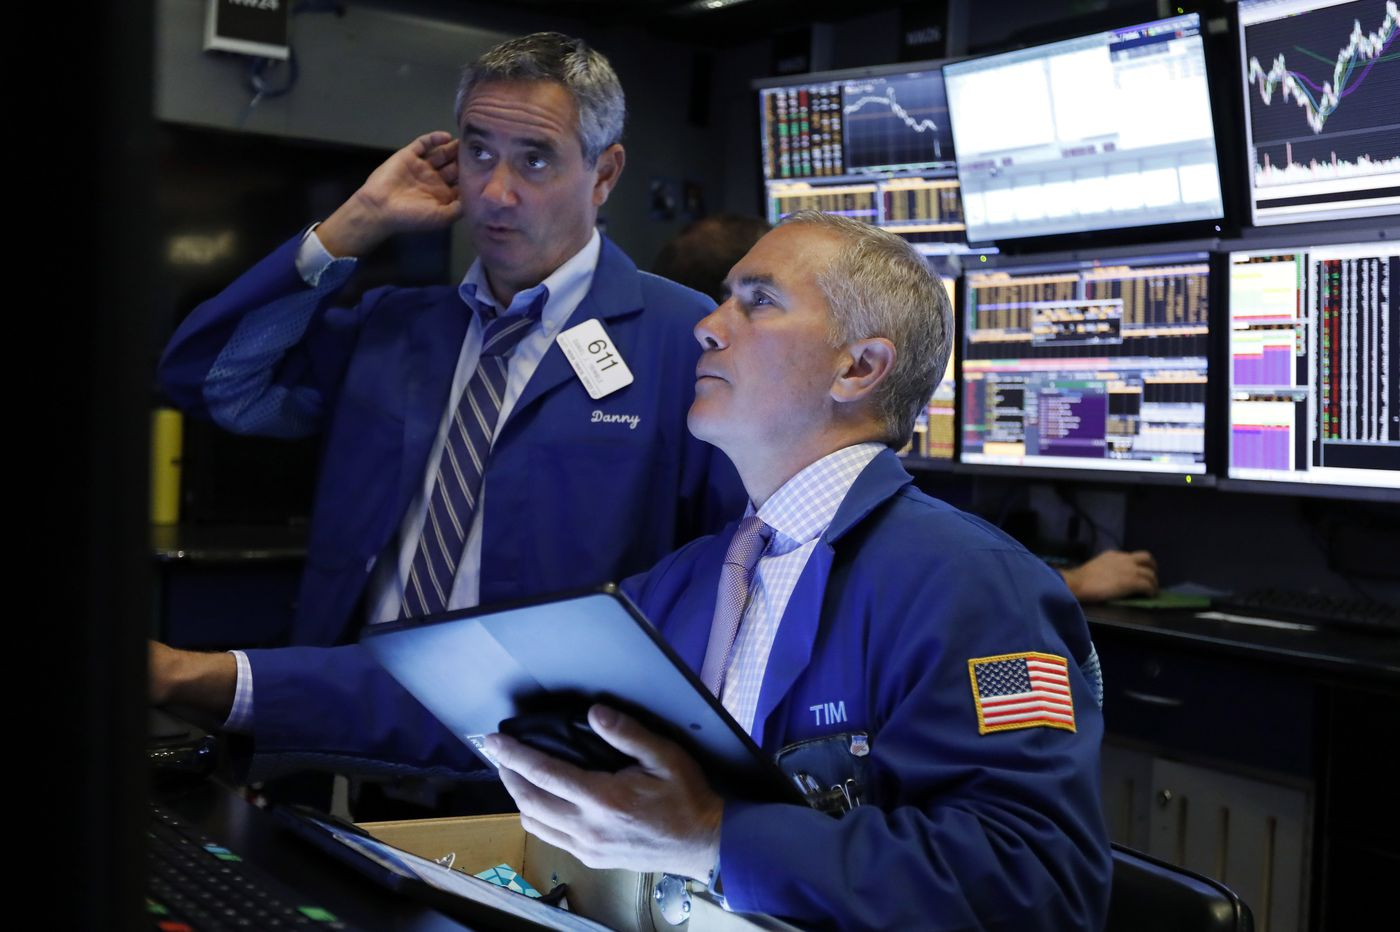 U.S. stocks jump amid optimism ahead of White House meeting with Chinese officials